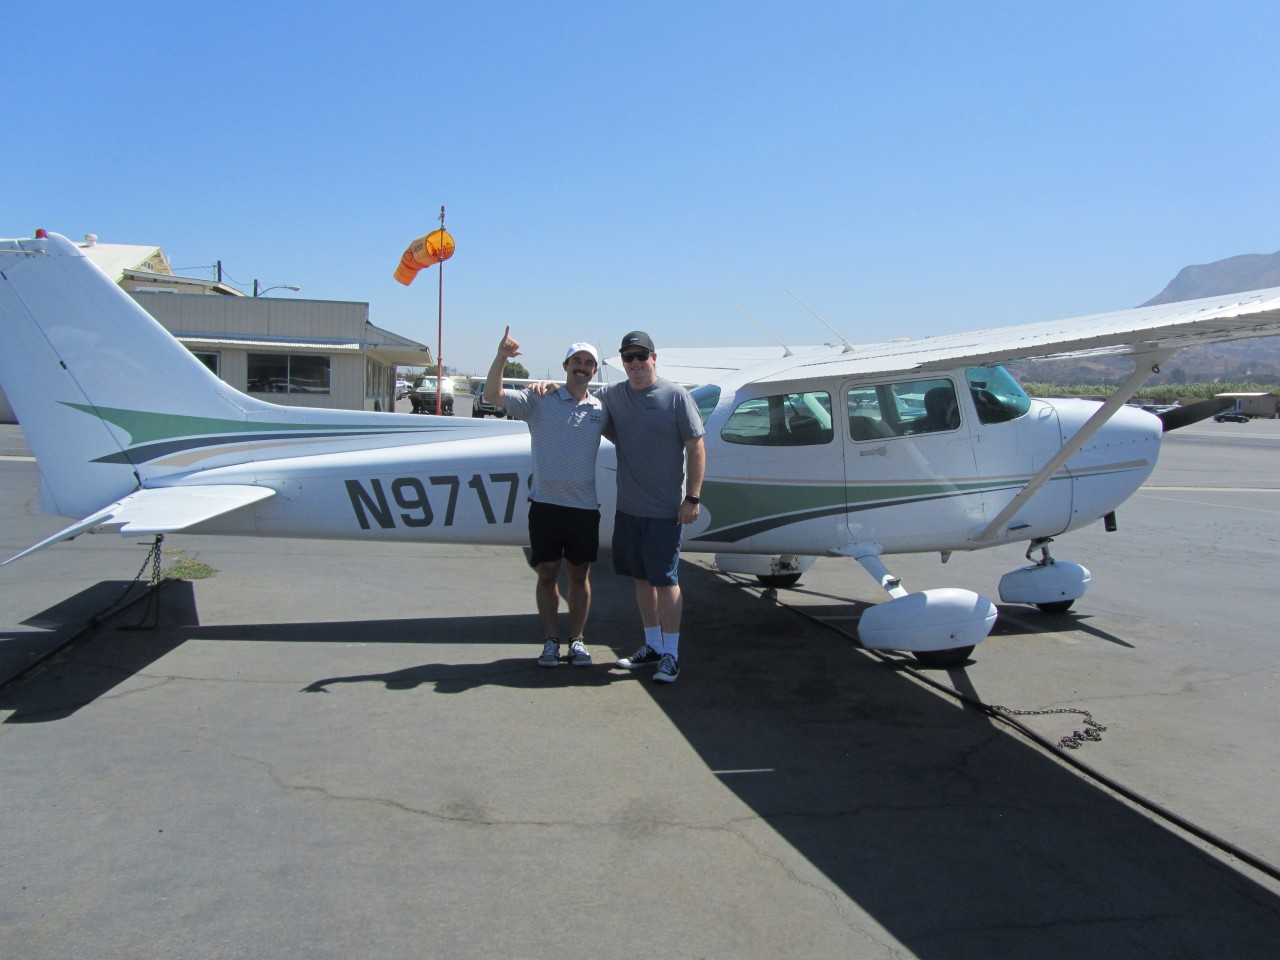 First Solo - Michael Cushing!